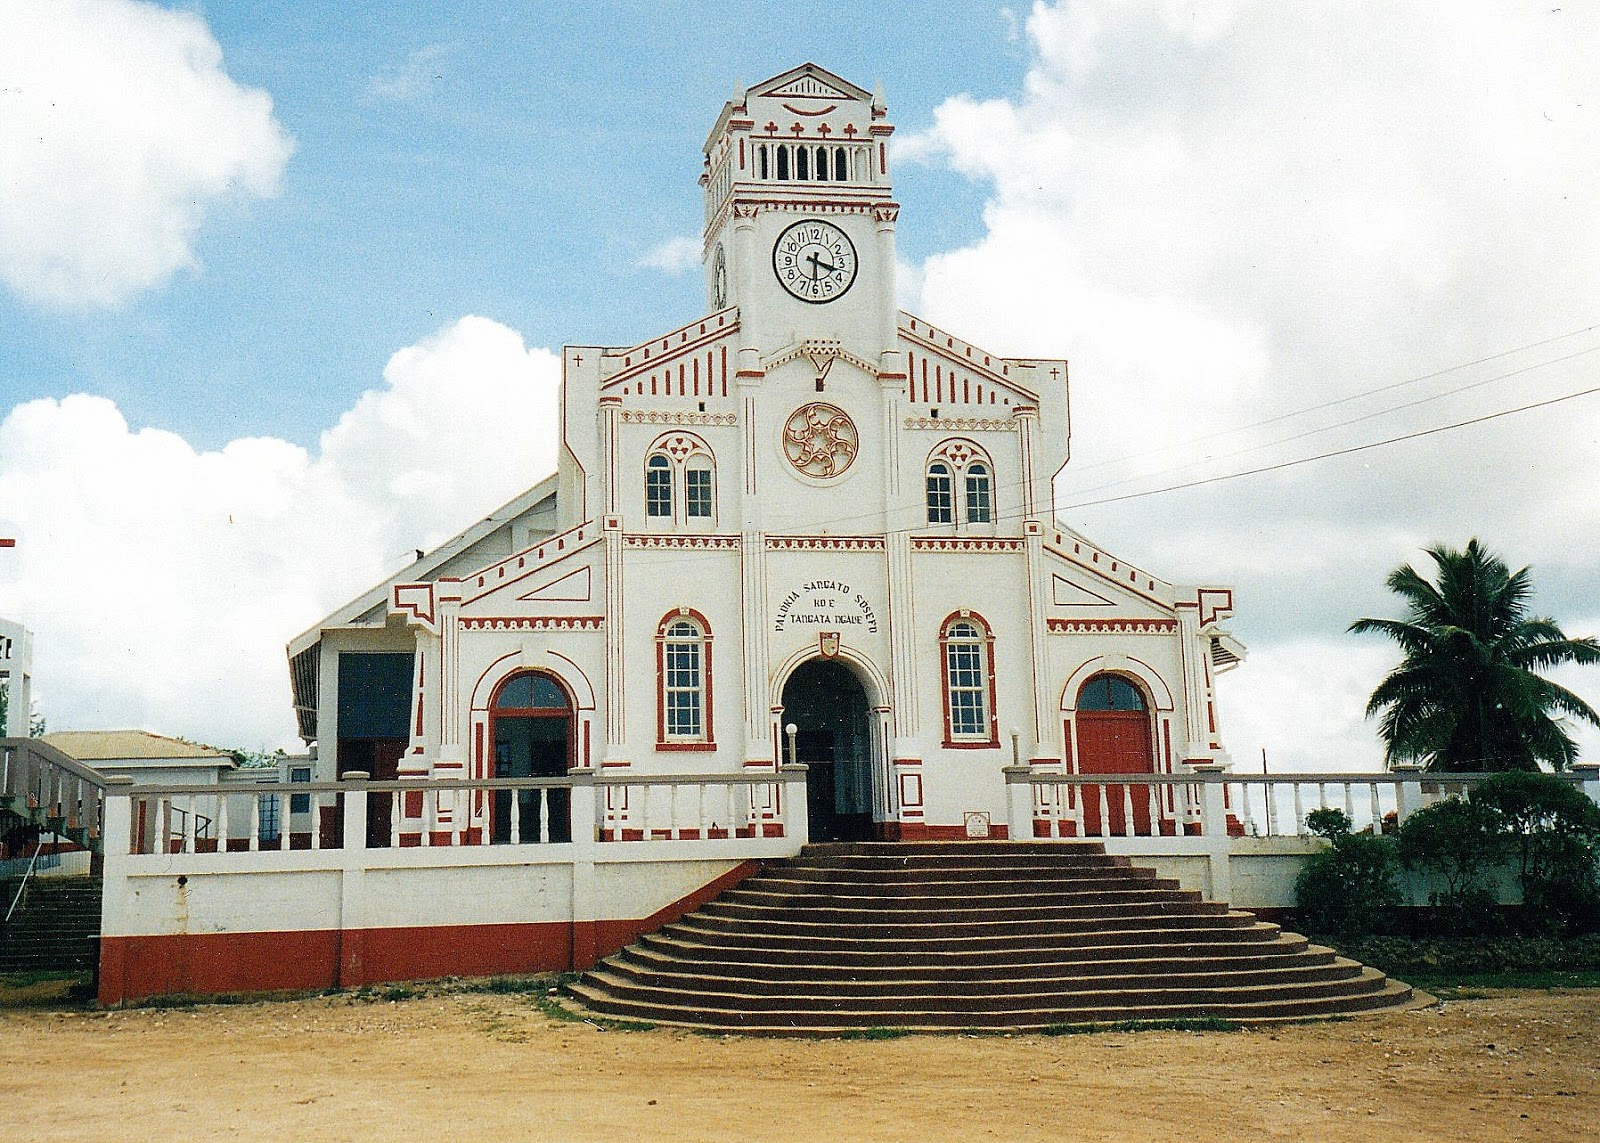 Tonga has some interesting designs of churches